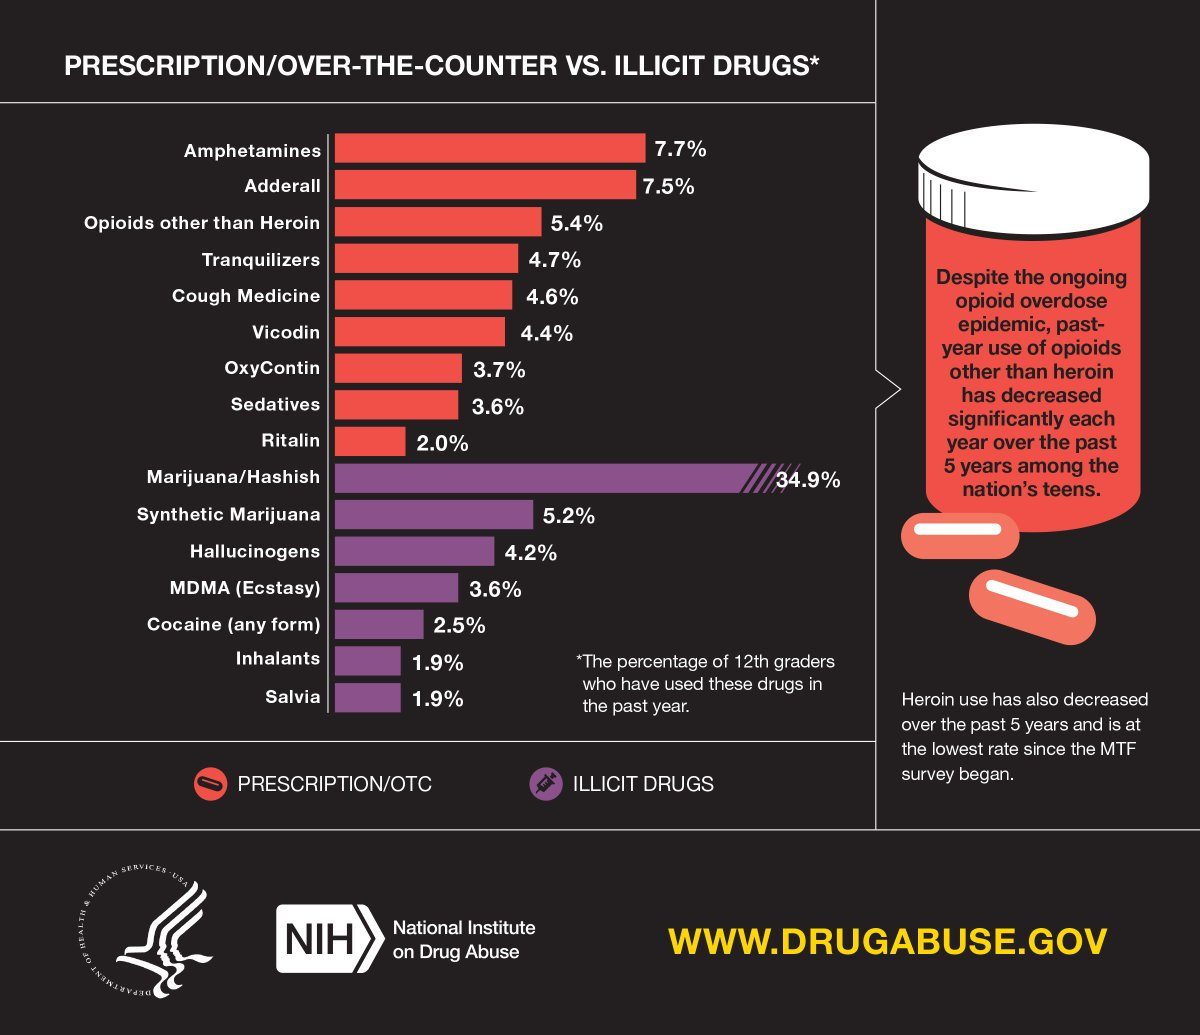 T4 2015 rates of #Rx and illicit drug use. #MTF2015 https://t.co/5ZAfELgsw9